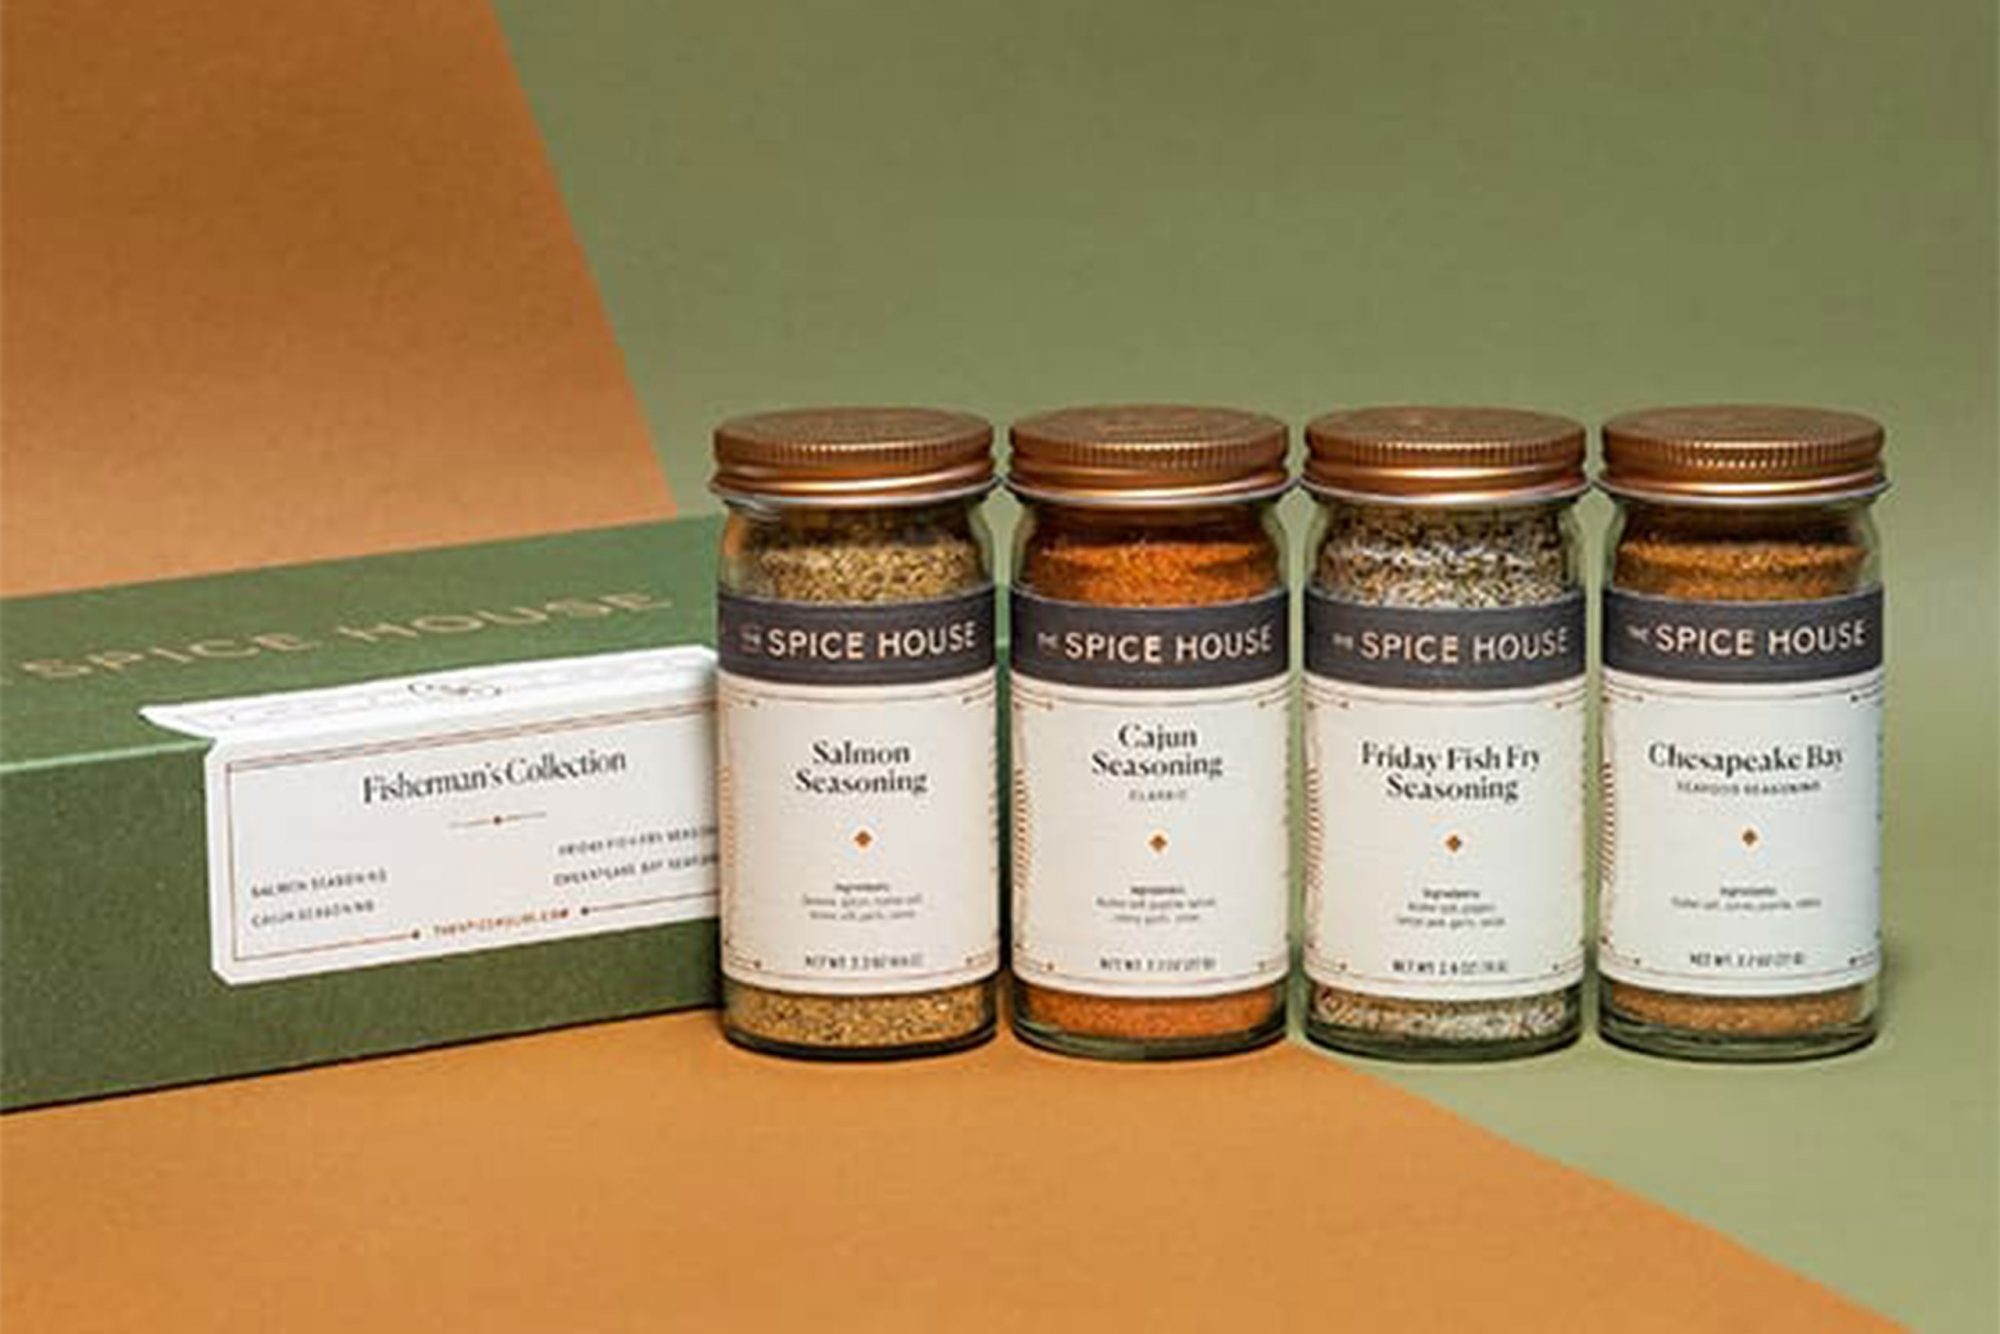 The Spice House Fisherman's Collection Four Jar Spice Box